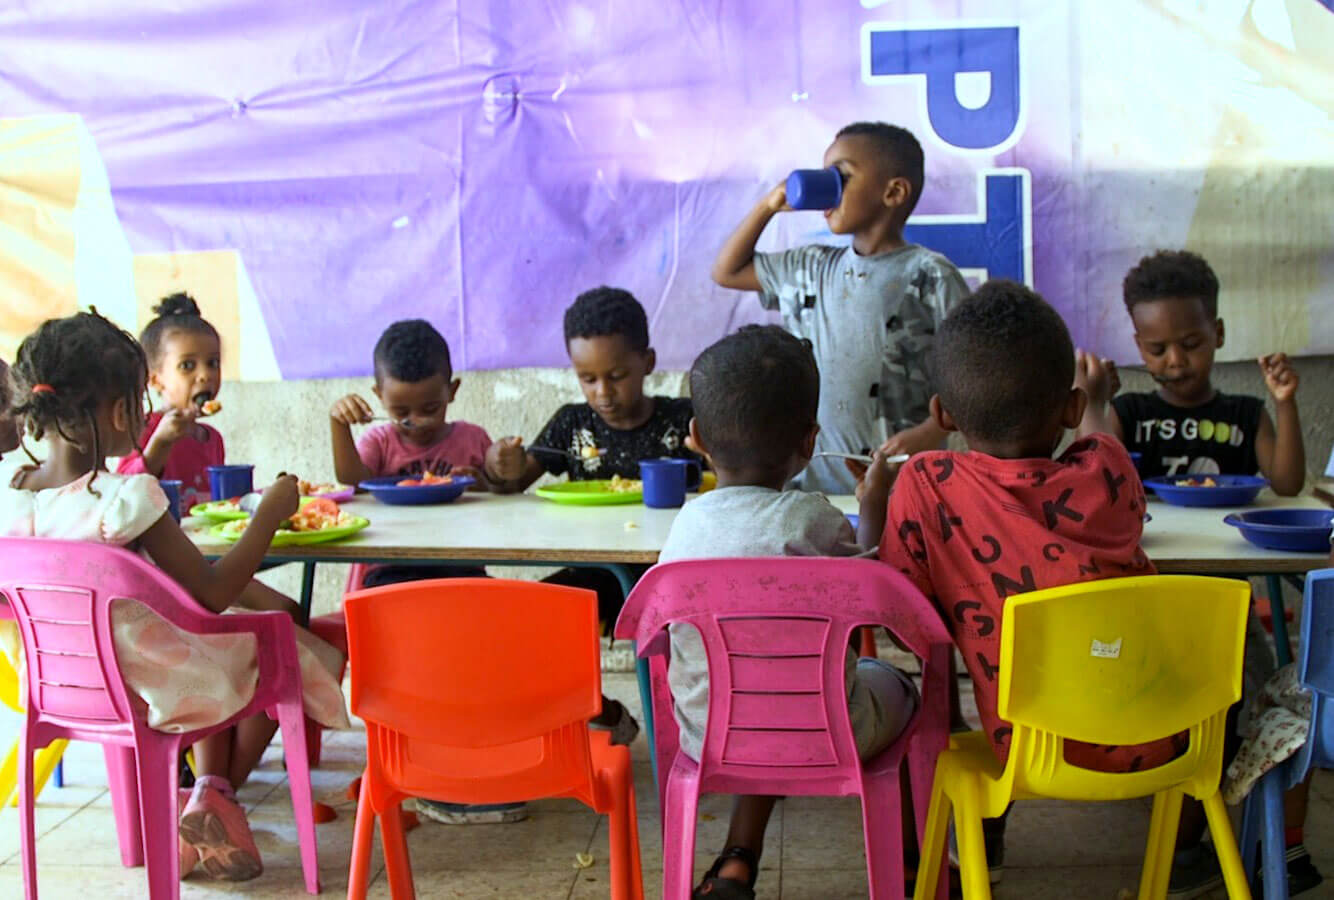 Nine daycare centers for children of foreign workers and refugees. As well as 90 school aged children of refugees and foreign workers attending the after school St. Mary's Church program.